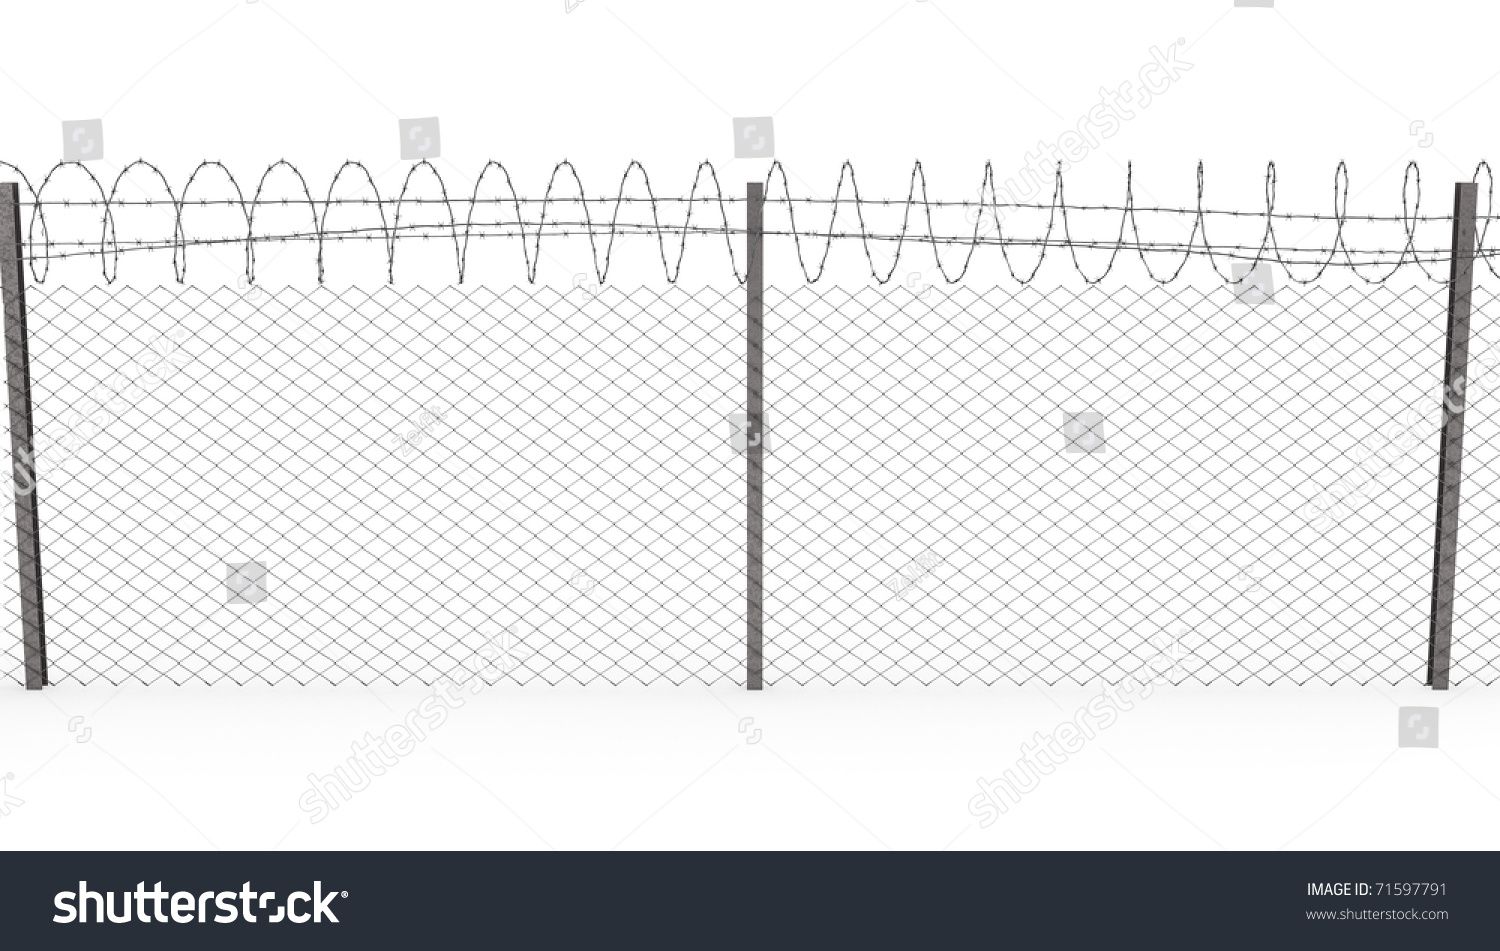 chainlink fence barbed wire on top stock illustration 71597791 diagram h bracr barbed wire chainlink fence with barbed wire on top isolated on white background, front view